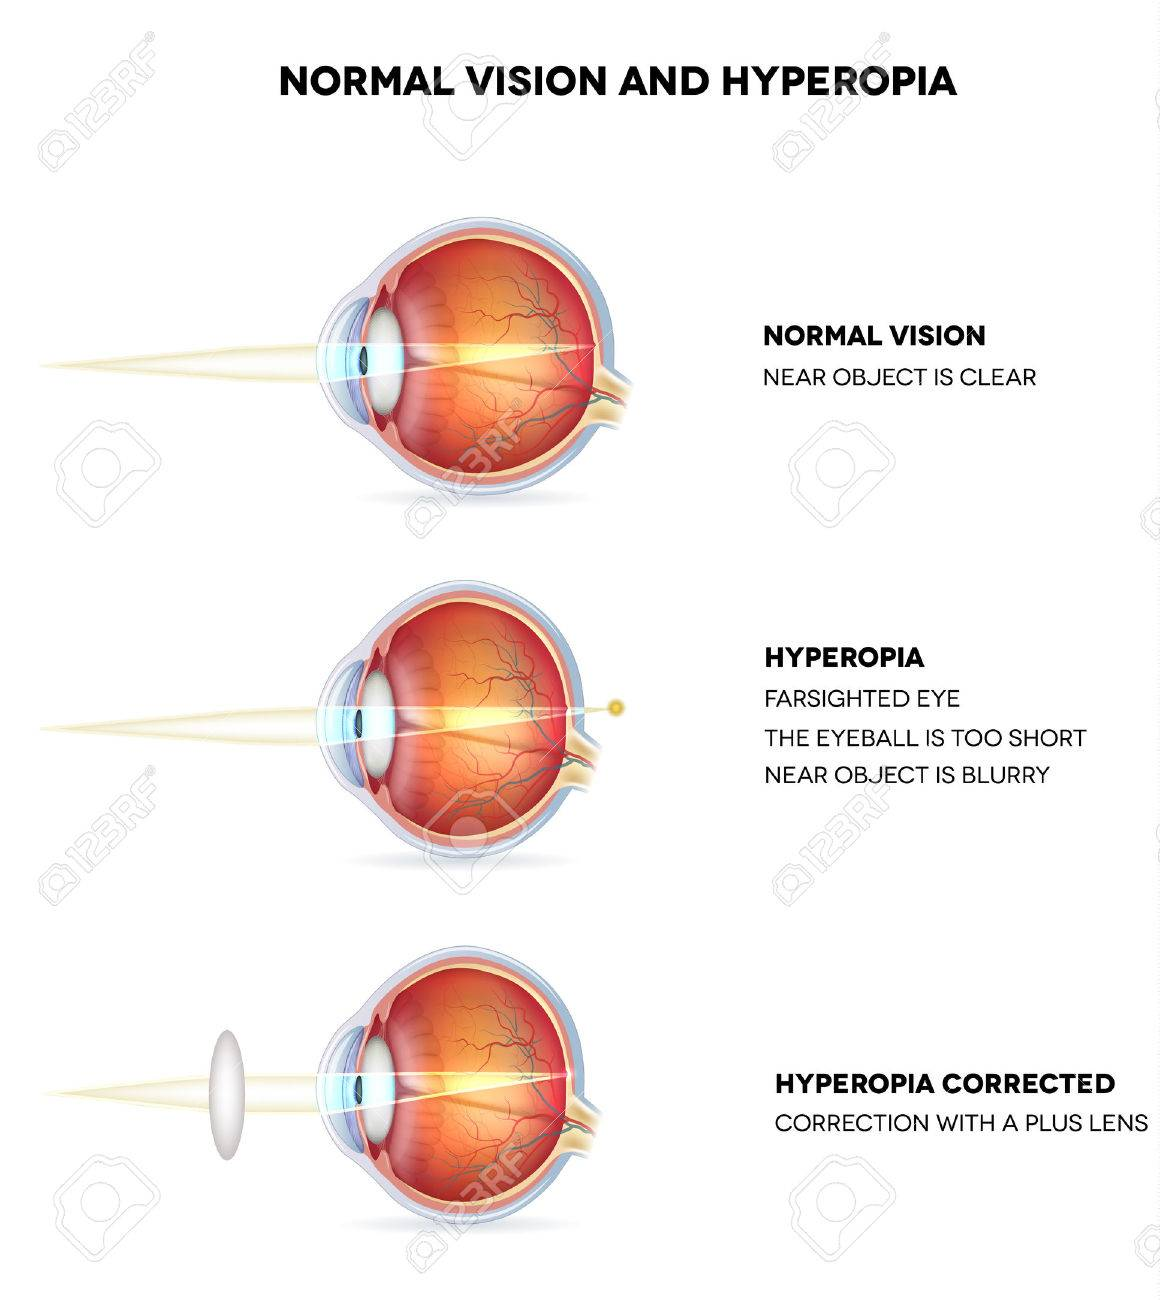 2cf7d9baf3b3 Hyperopia is being farsighted. Illustration shows hyperopia corrected with a